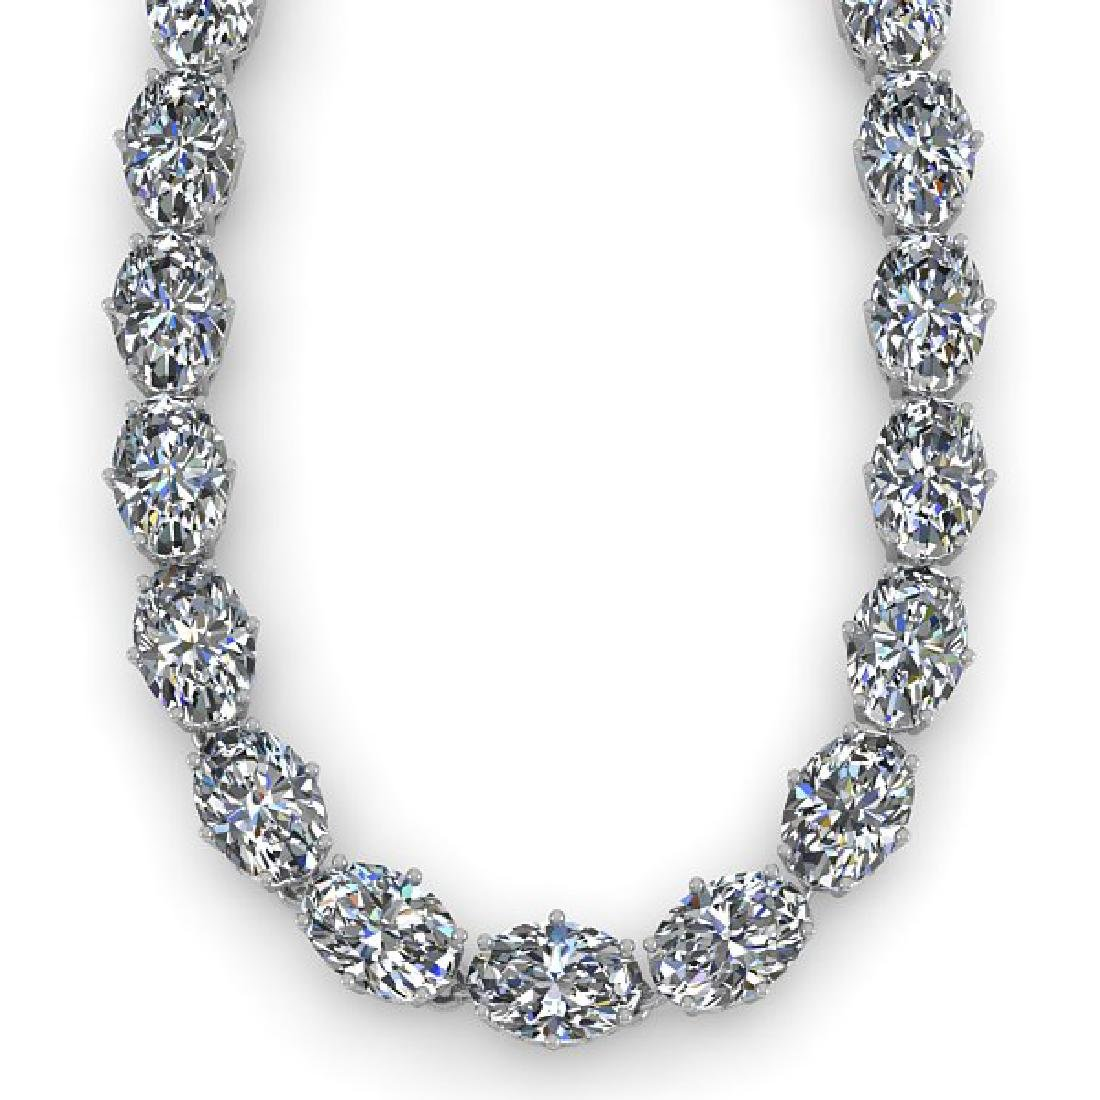 30 CTW Oval Cut SI Certified Diamond Necklace 14K White - 2